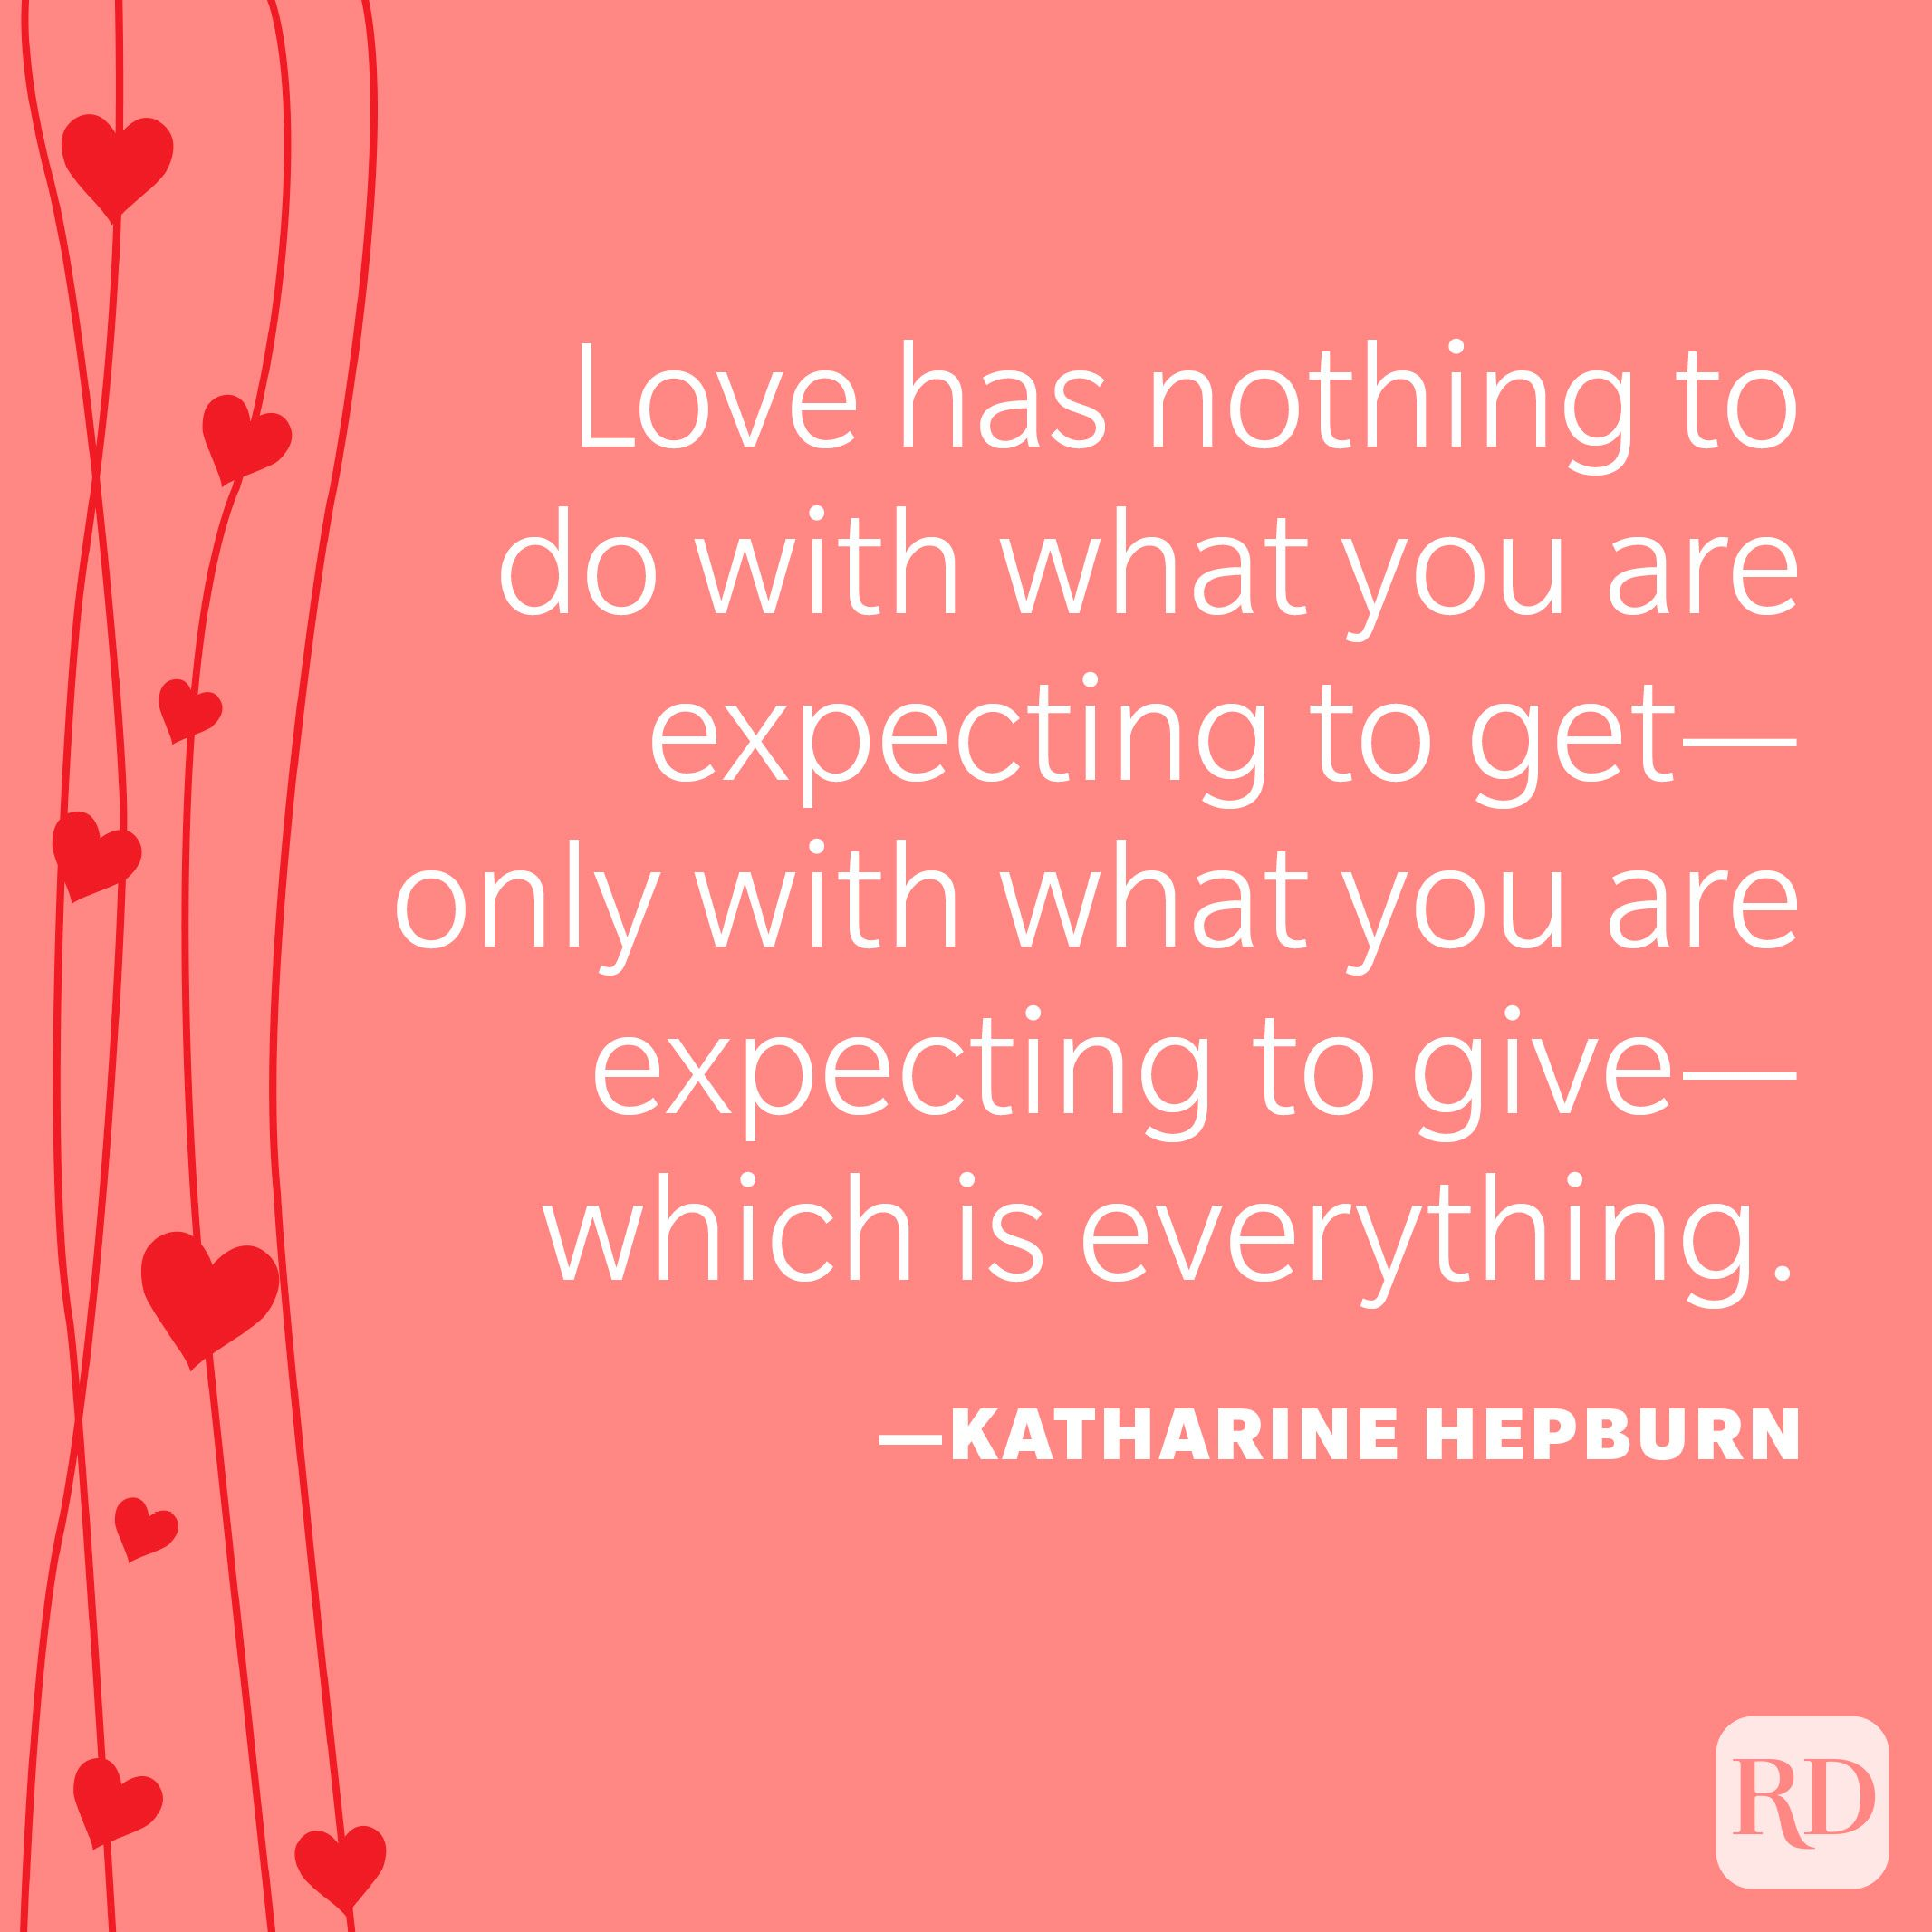 """""""Love has nothing to do with what you are expecting to get—only with what you are expecting to give—which is everything."""" —Katharine Hepburn"""